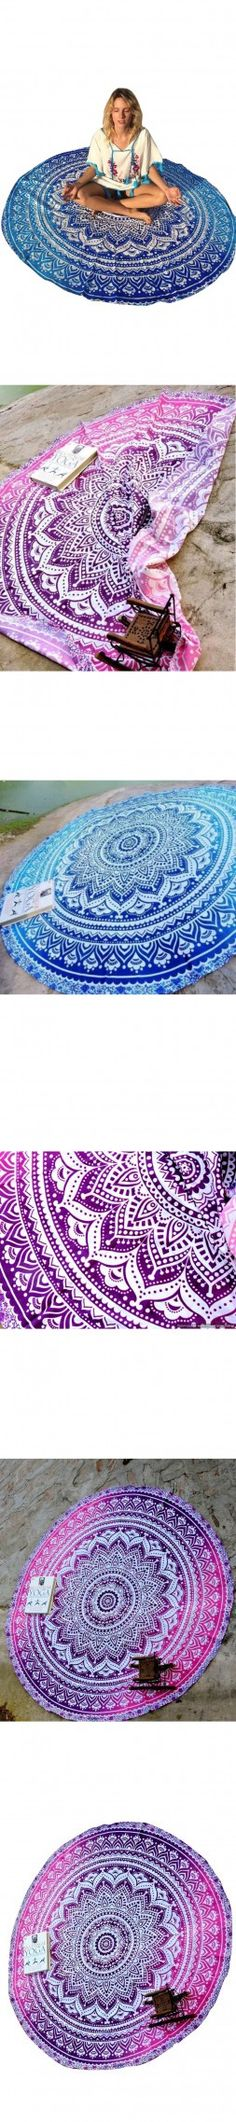 Elephant Indian Tapestry Wall Hanging Peacock Bed sheet Round Tapestry Mandala Perfect gift Picnic/Beach Spread Home Decor 42056 $23.32